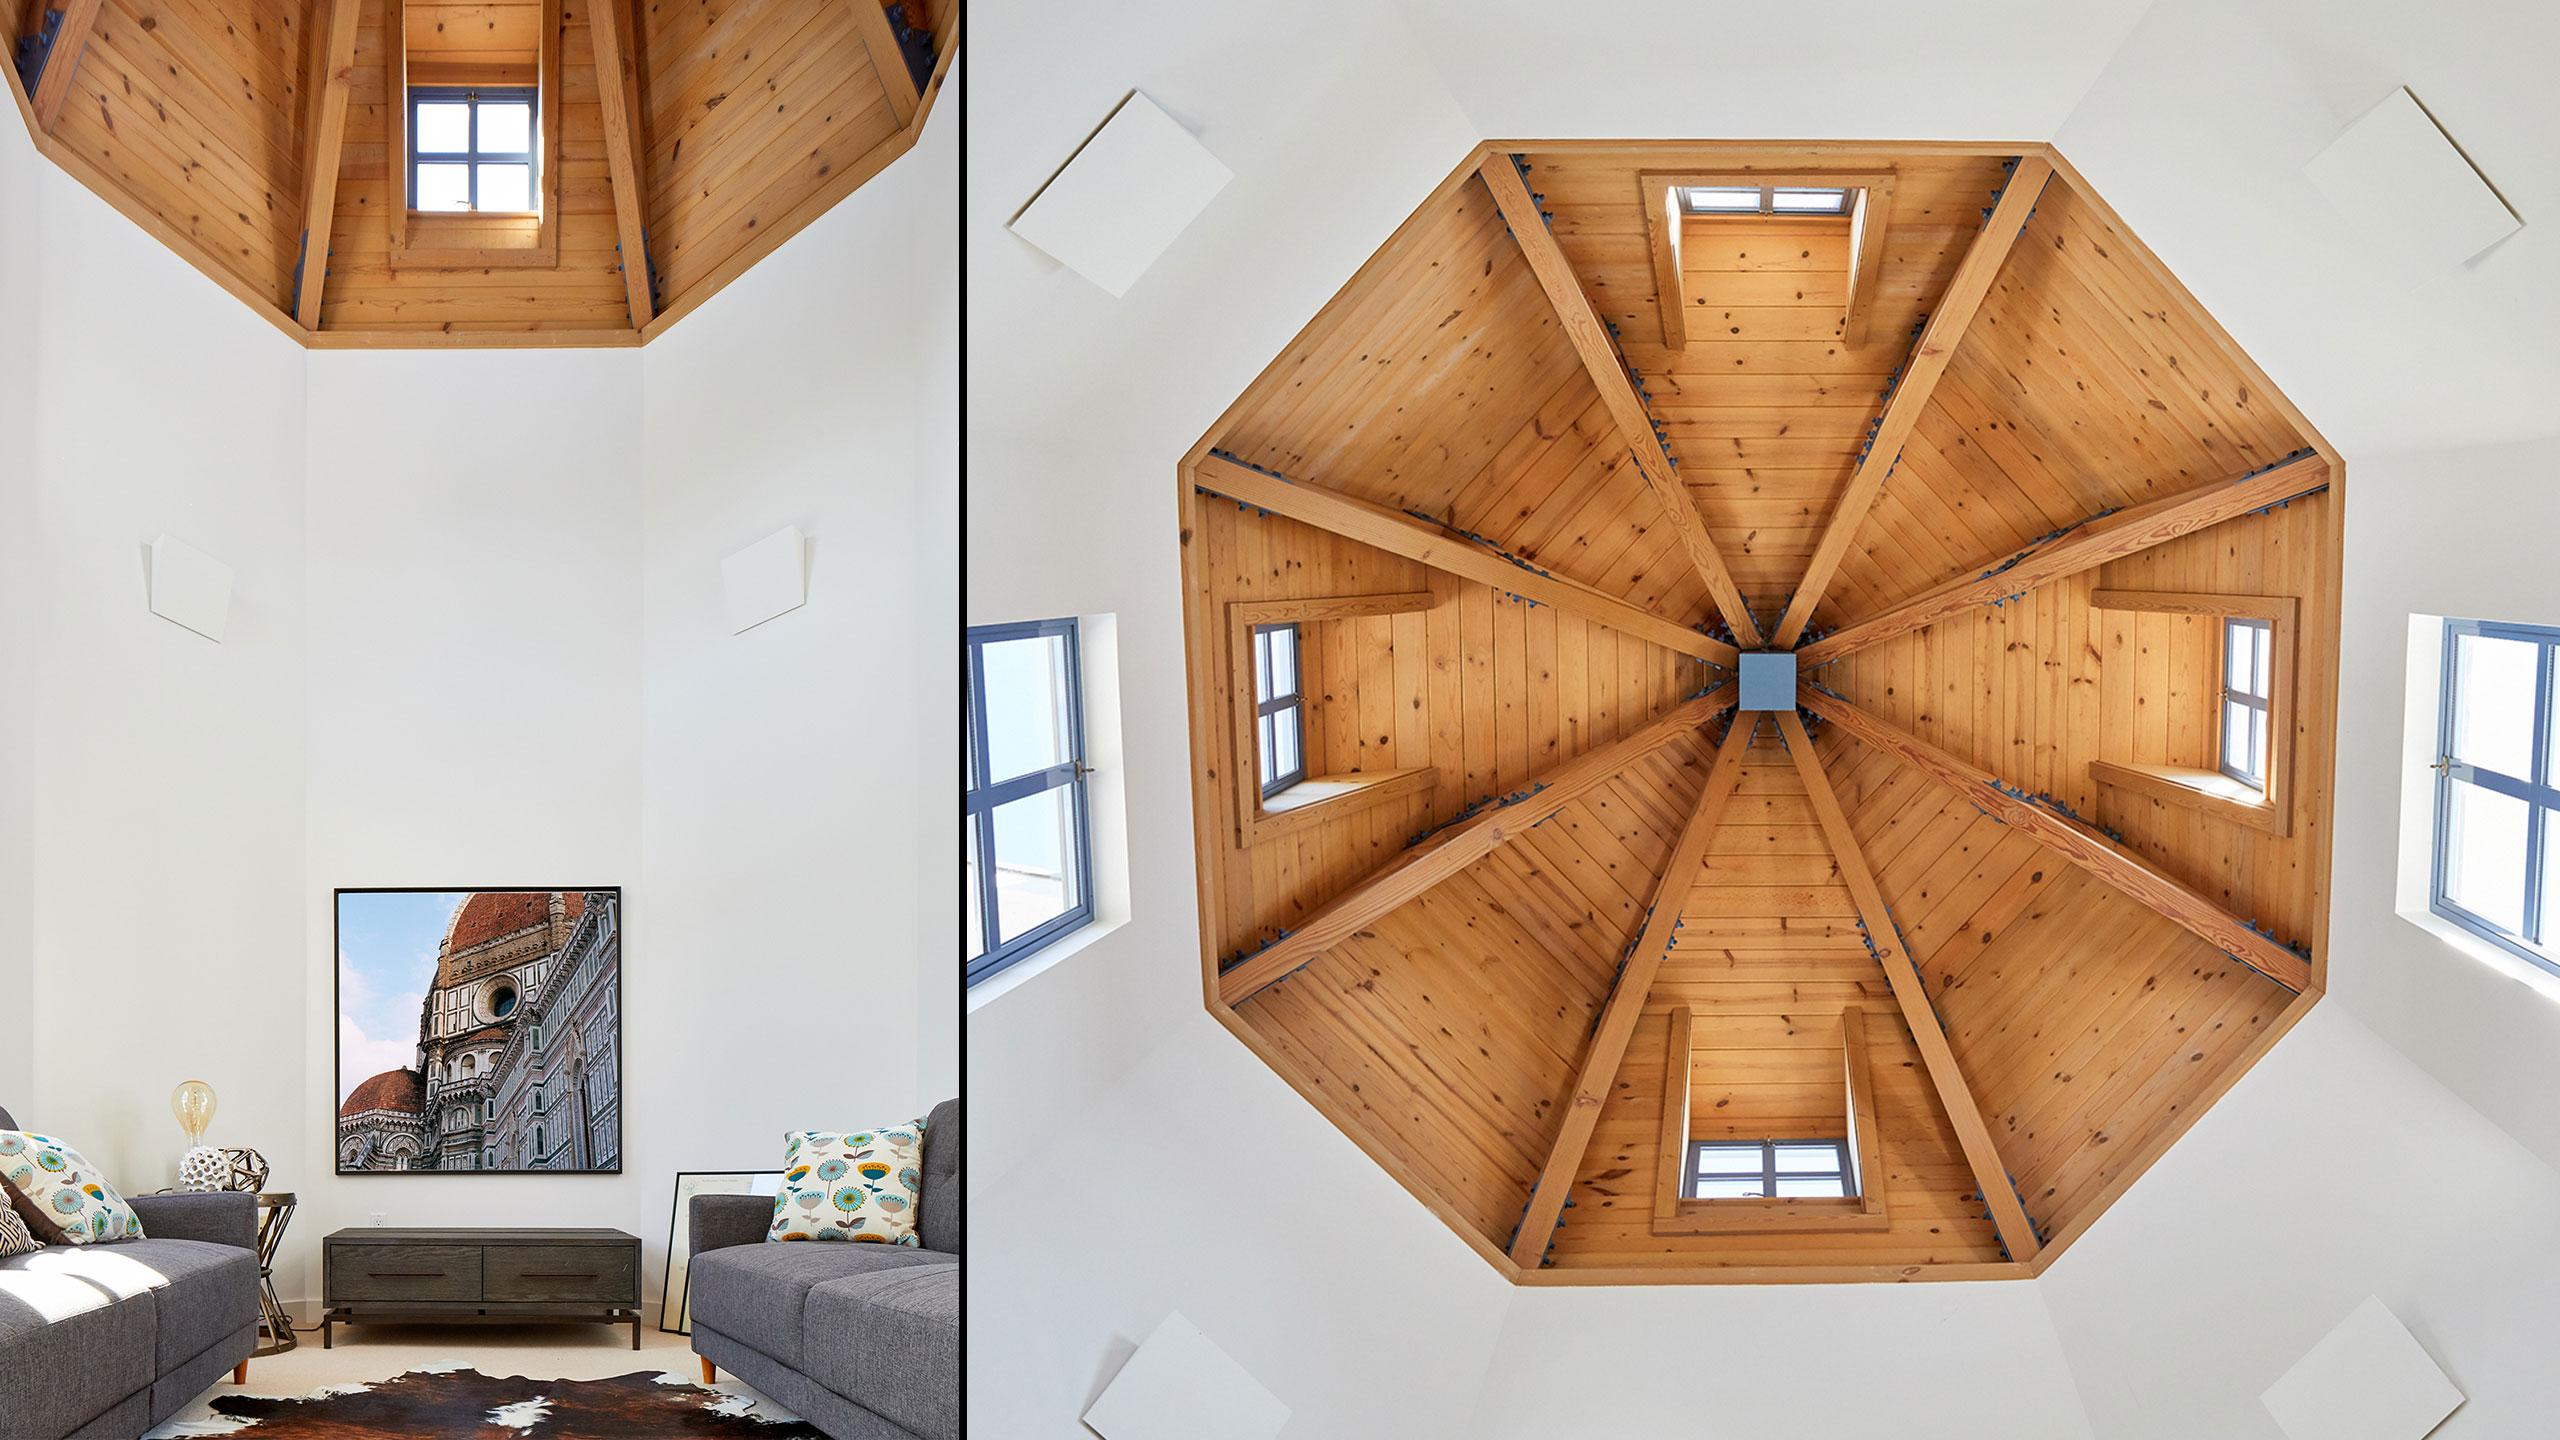 Napa-Farmhouse-round-room-in-tower-with-wood-ceiling